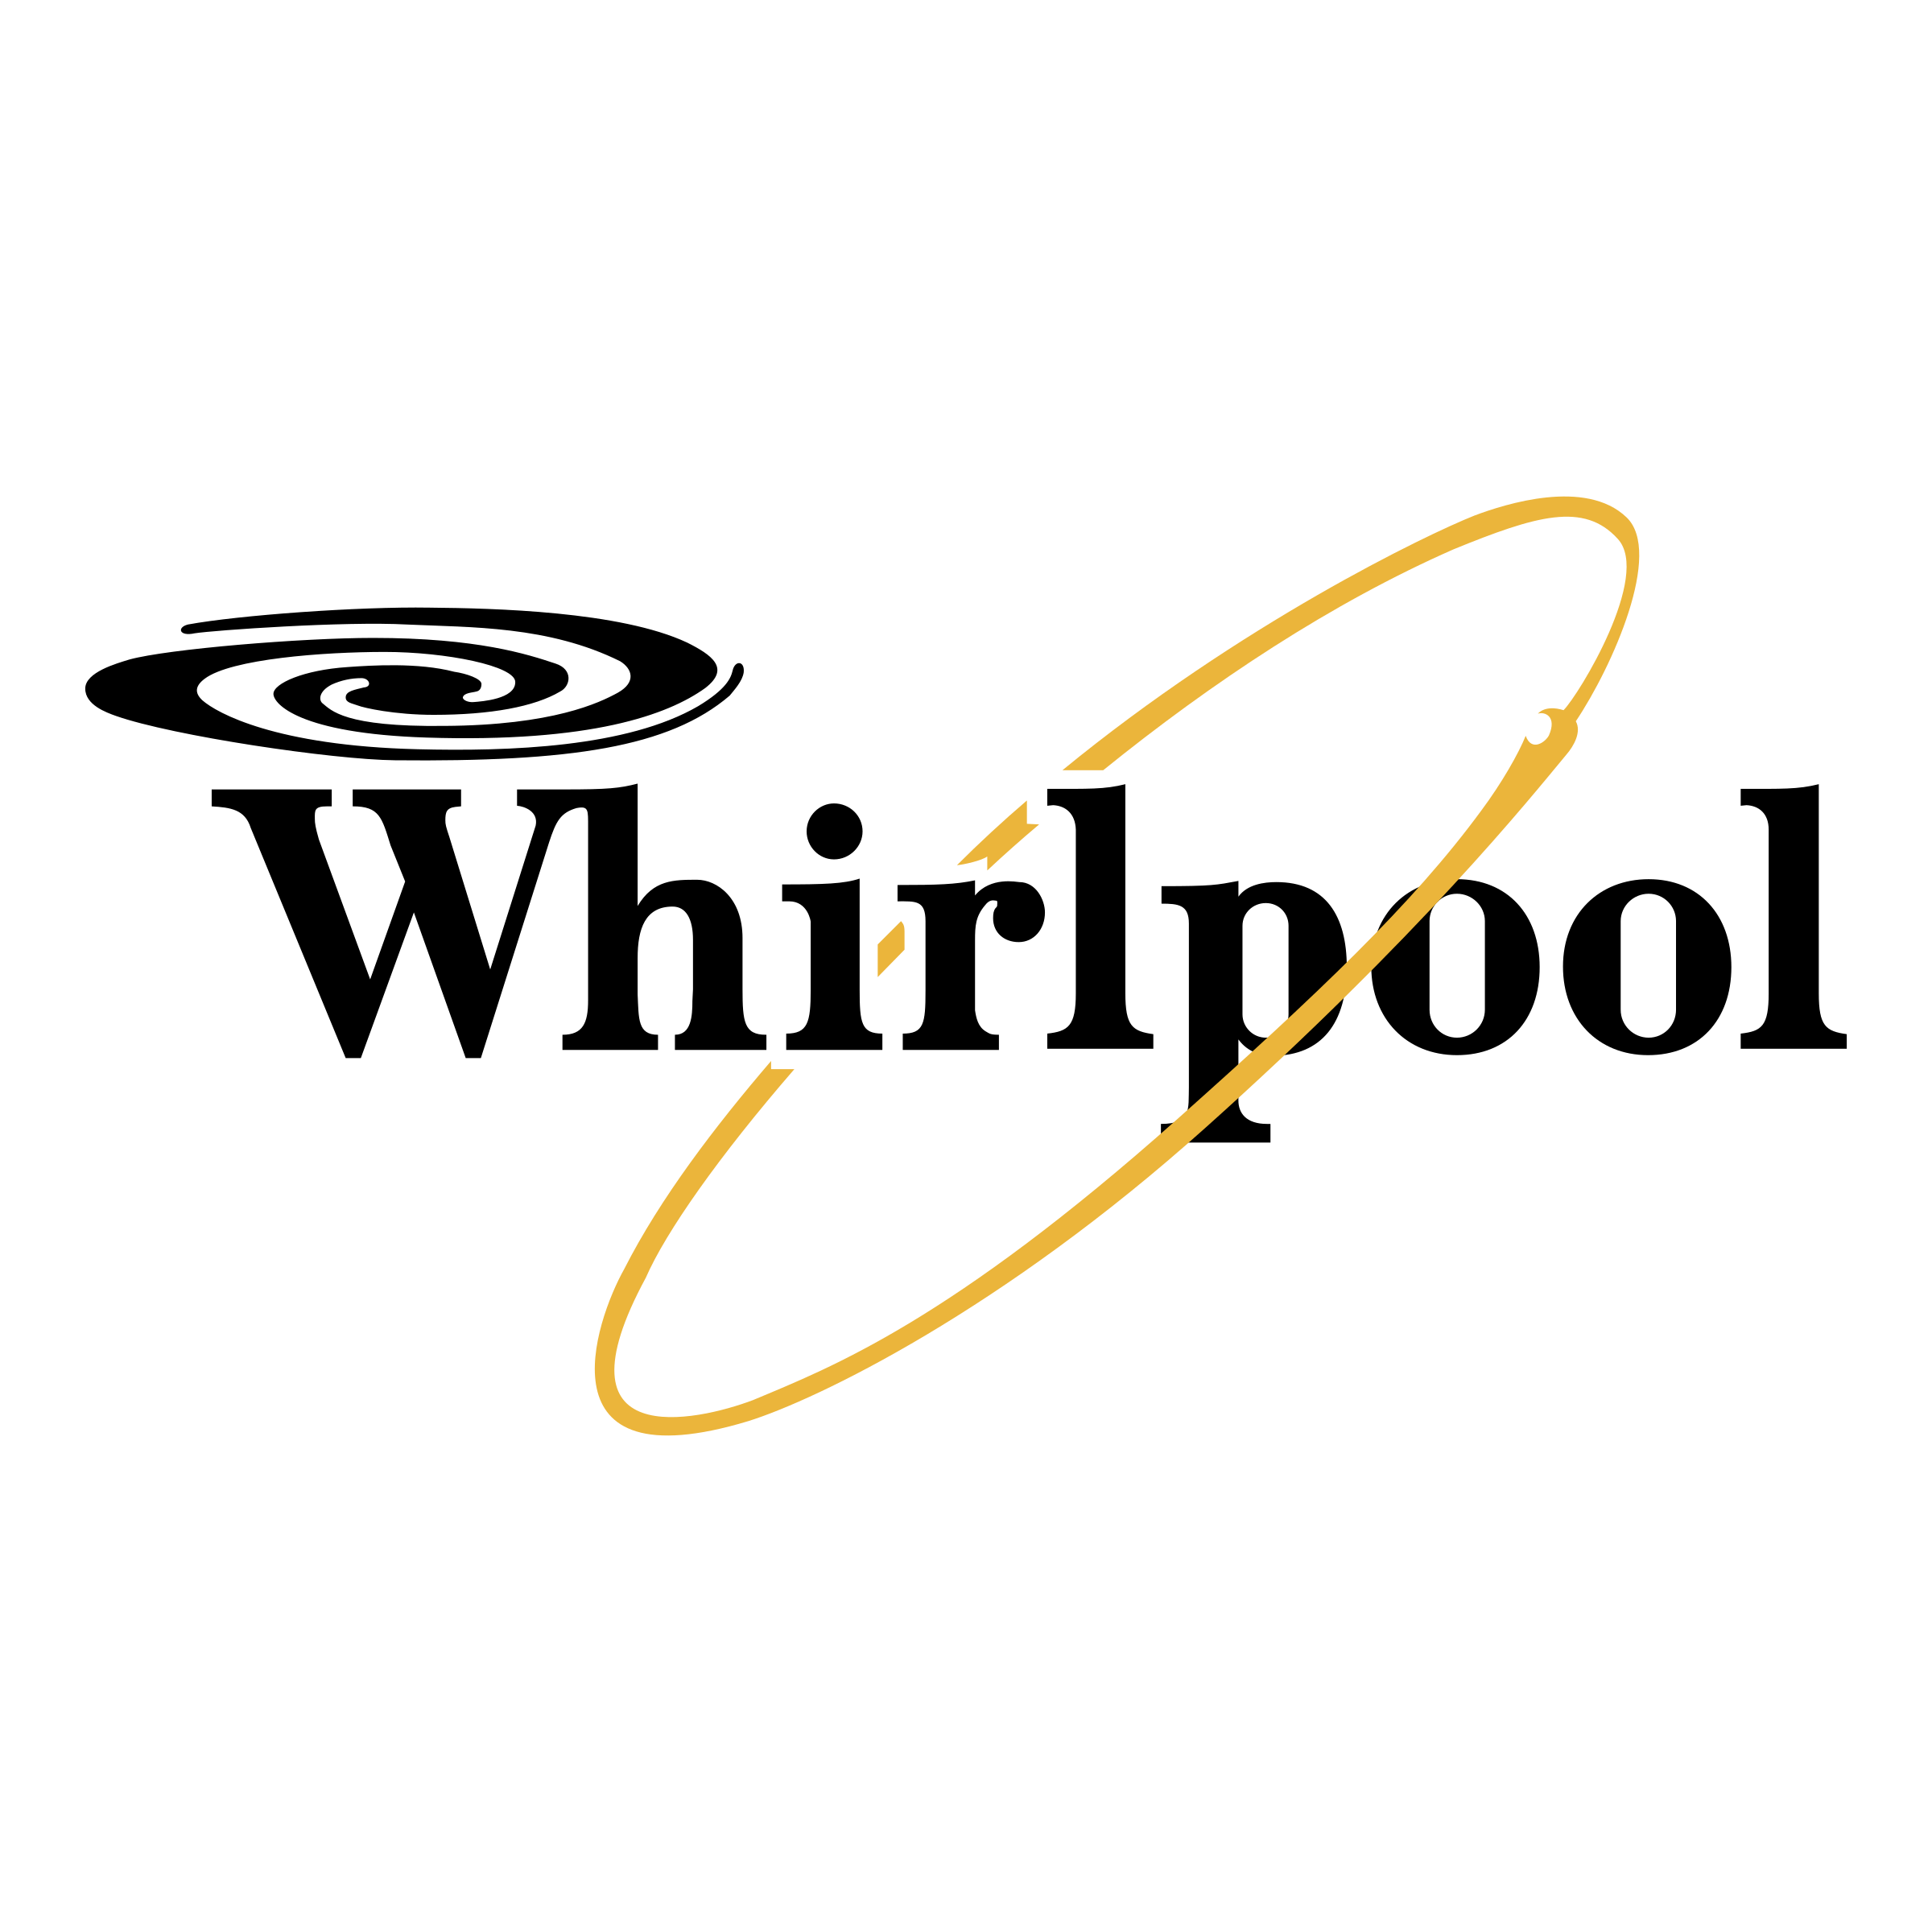 Whirlpool Logo - Whirlpool Logo PNG Transparent & SVG Vector - Freebie Supply